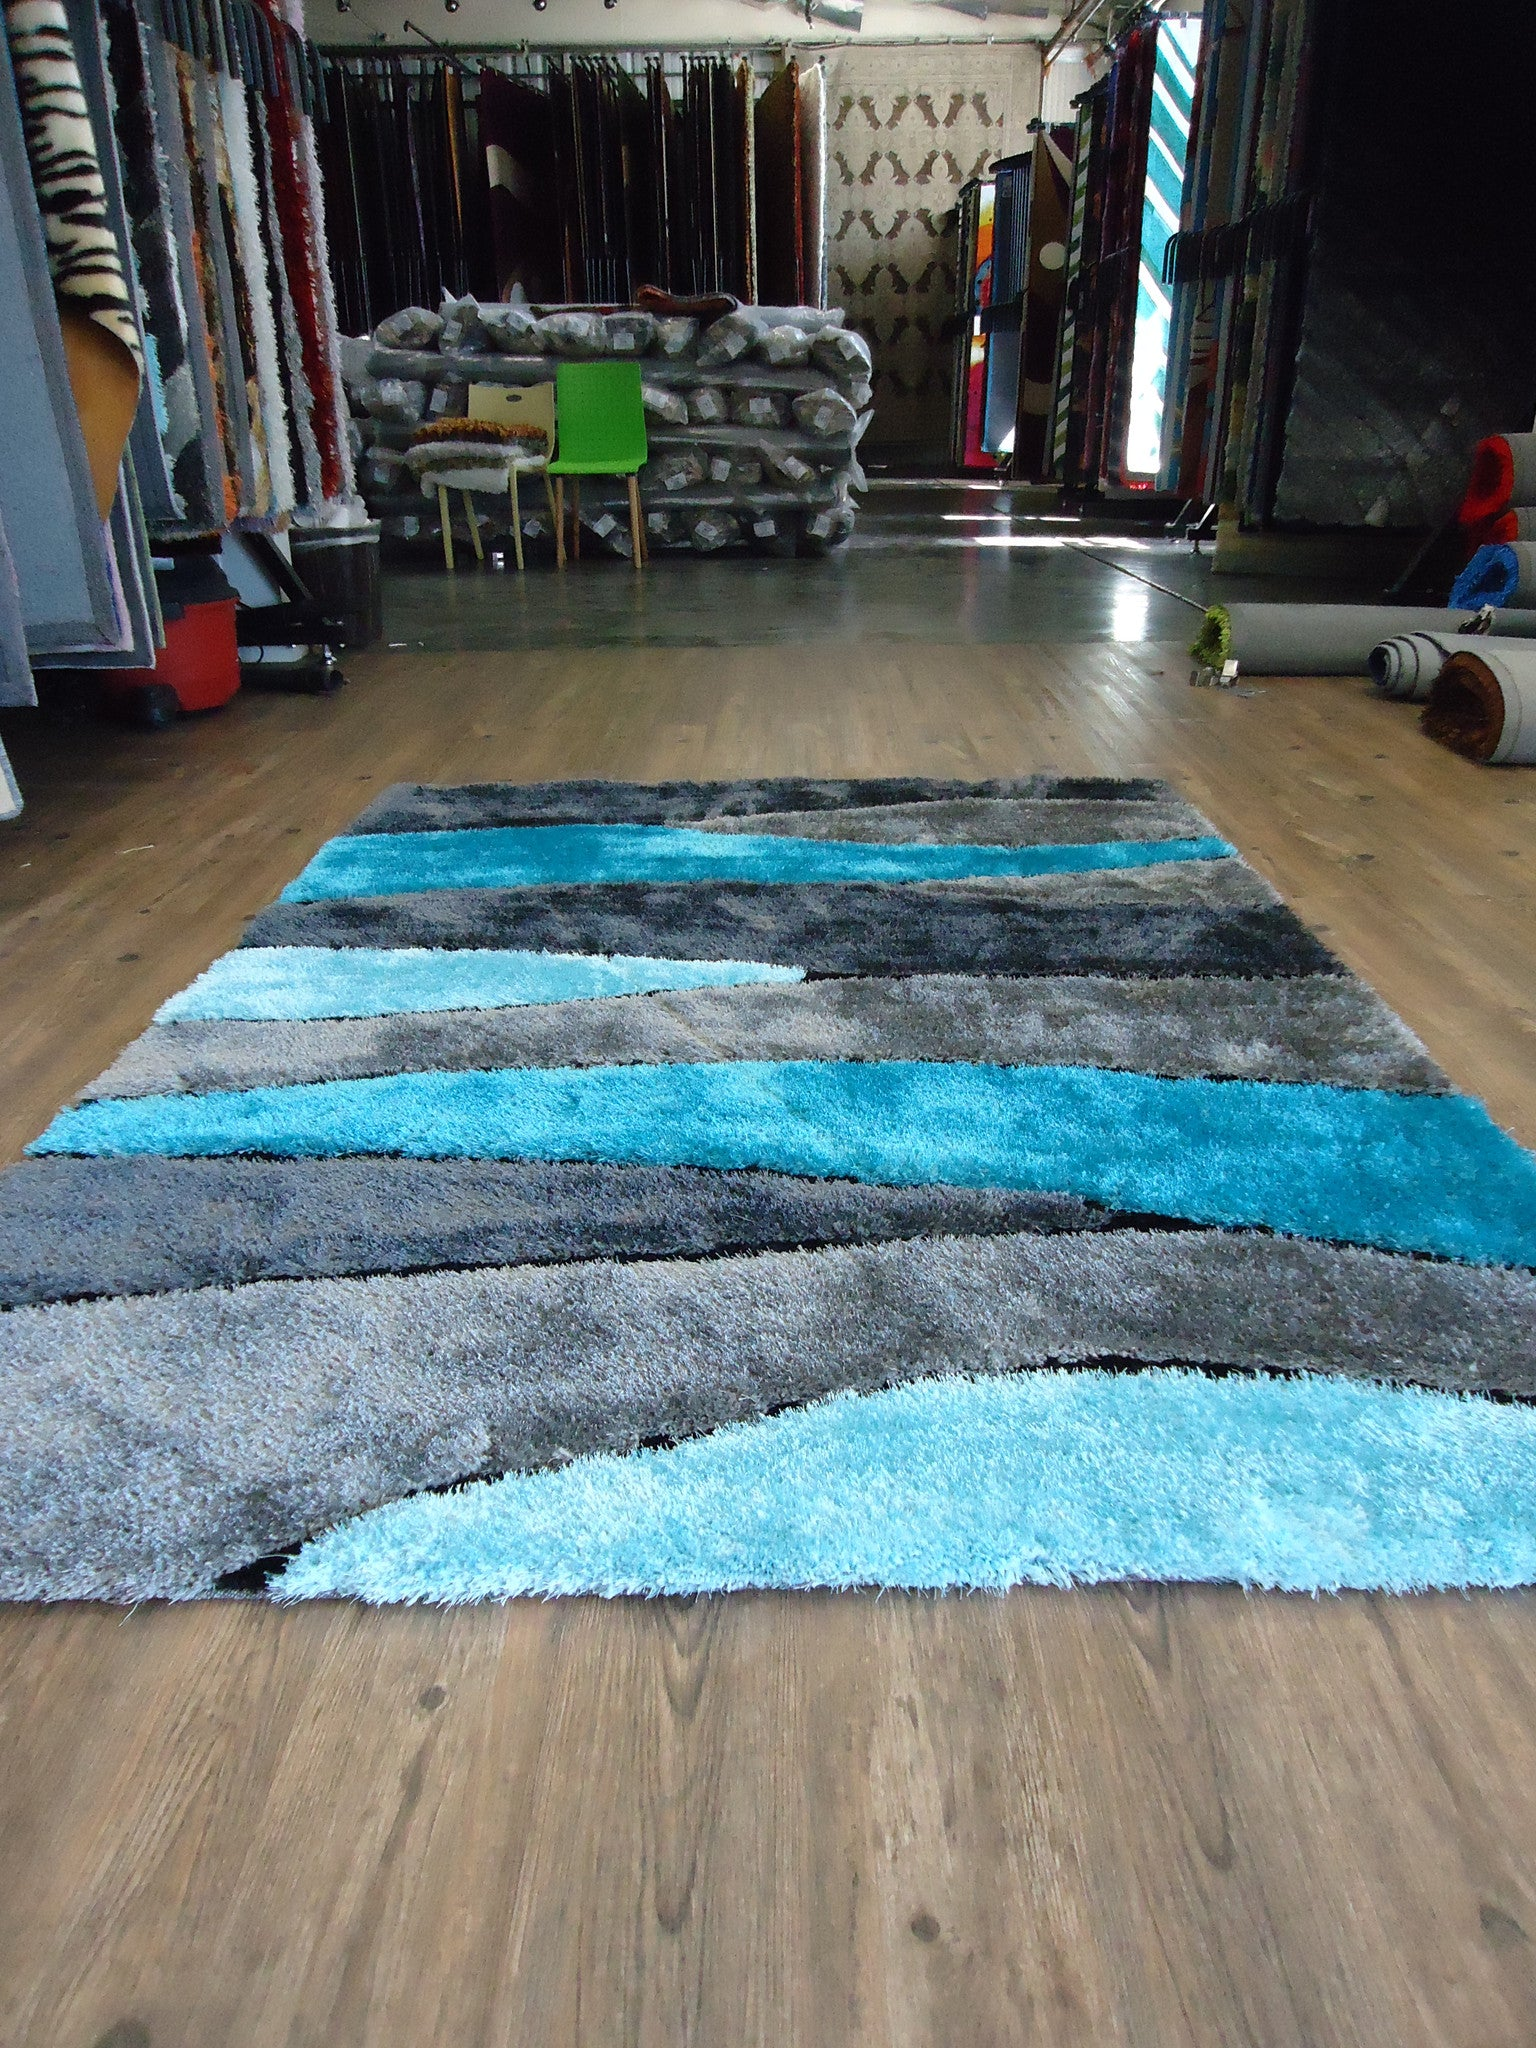 Handmade Vibrant Gray With Blue Shag Area Rug With Hand